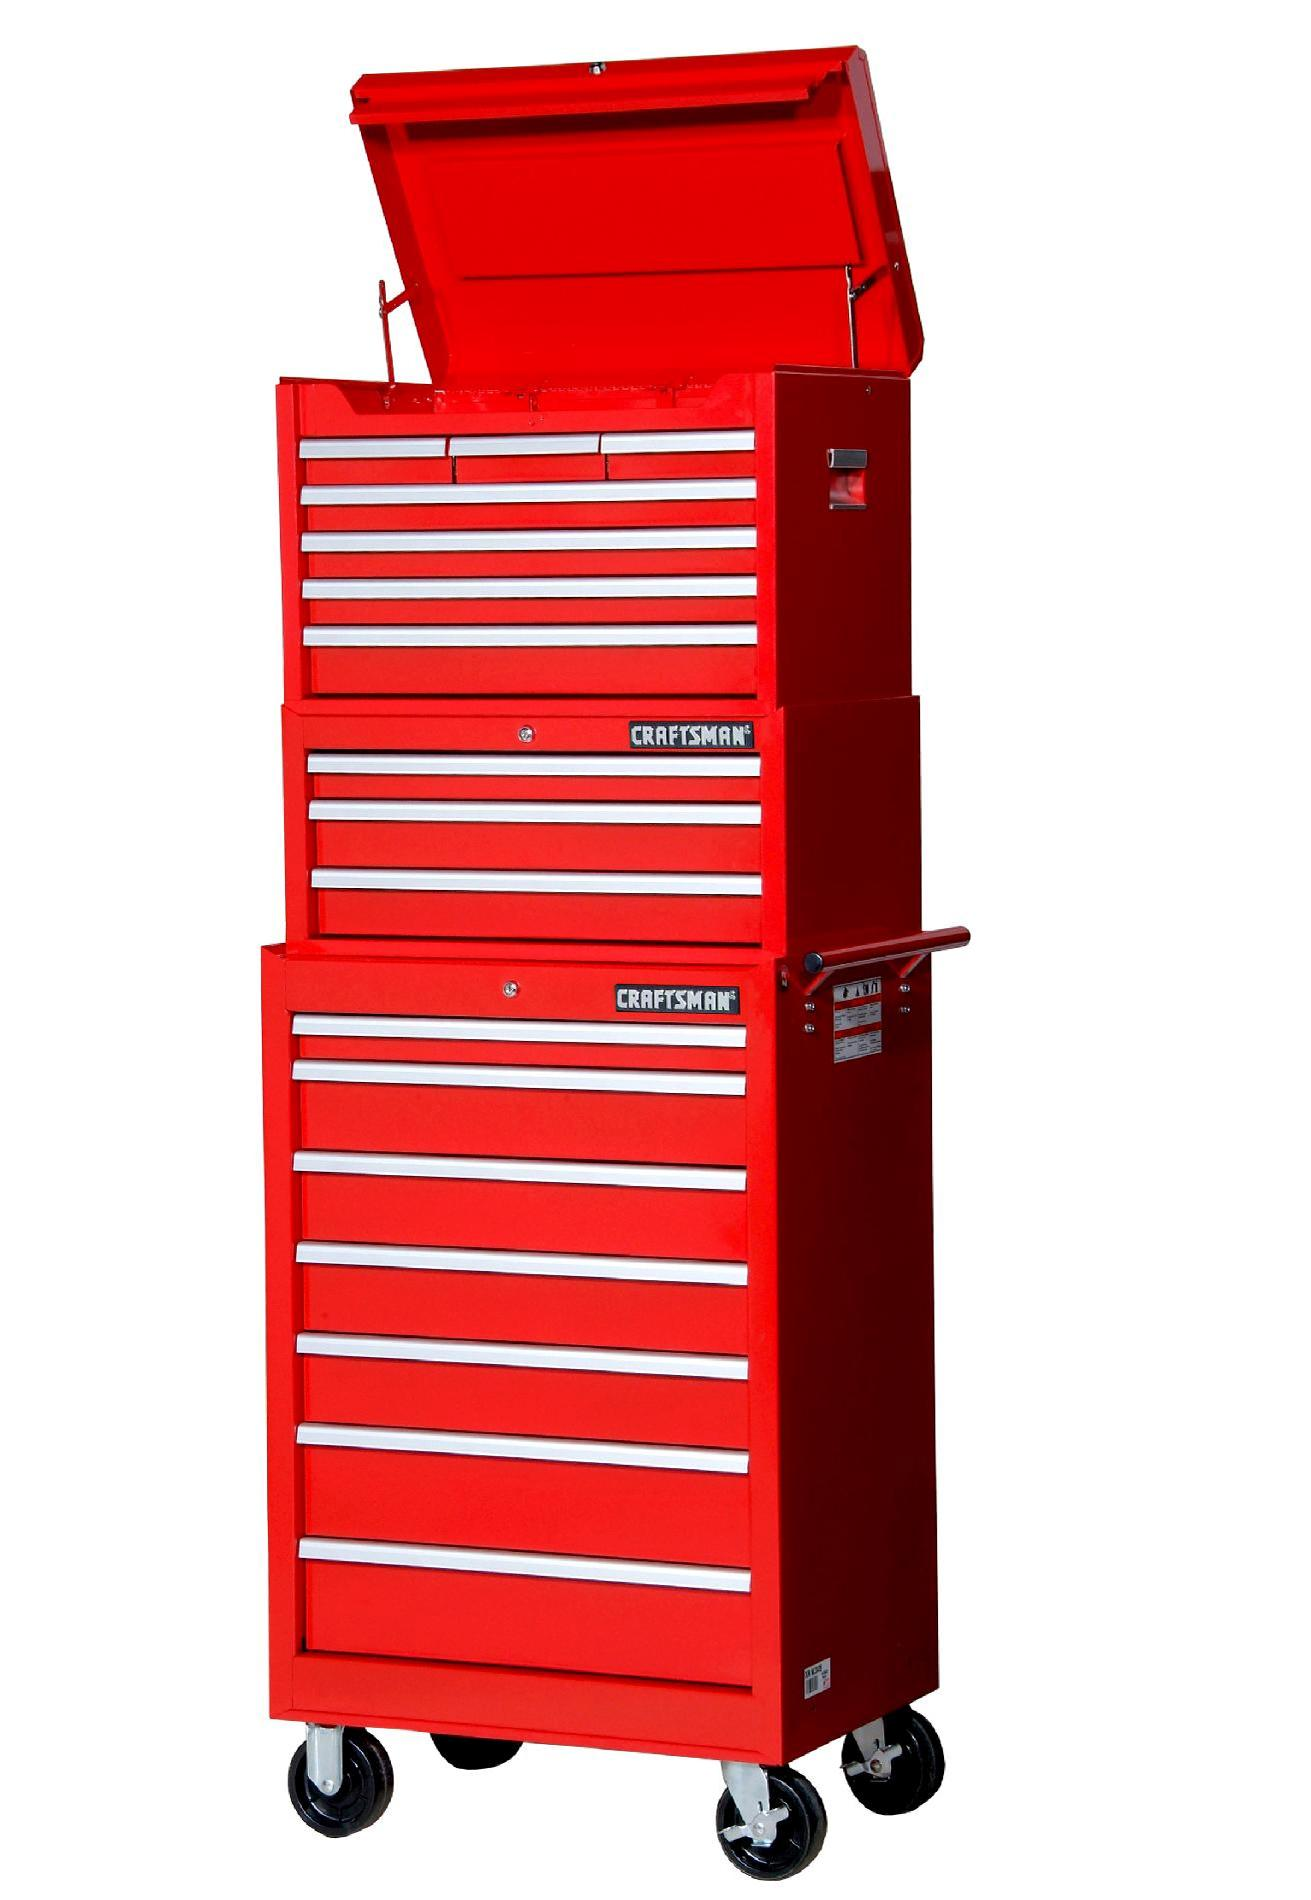 Craftsman 11-Drawer 3-PC Standard Duty Ball-Bearing Combo Red